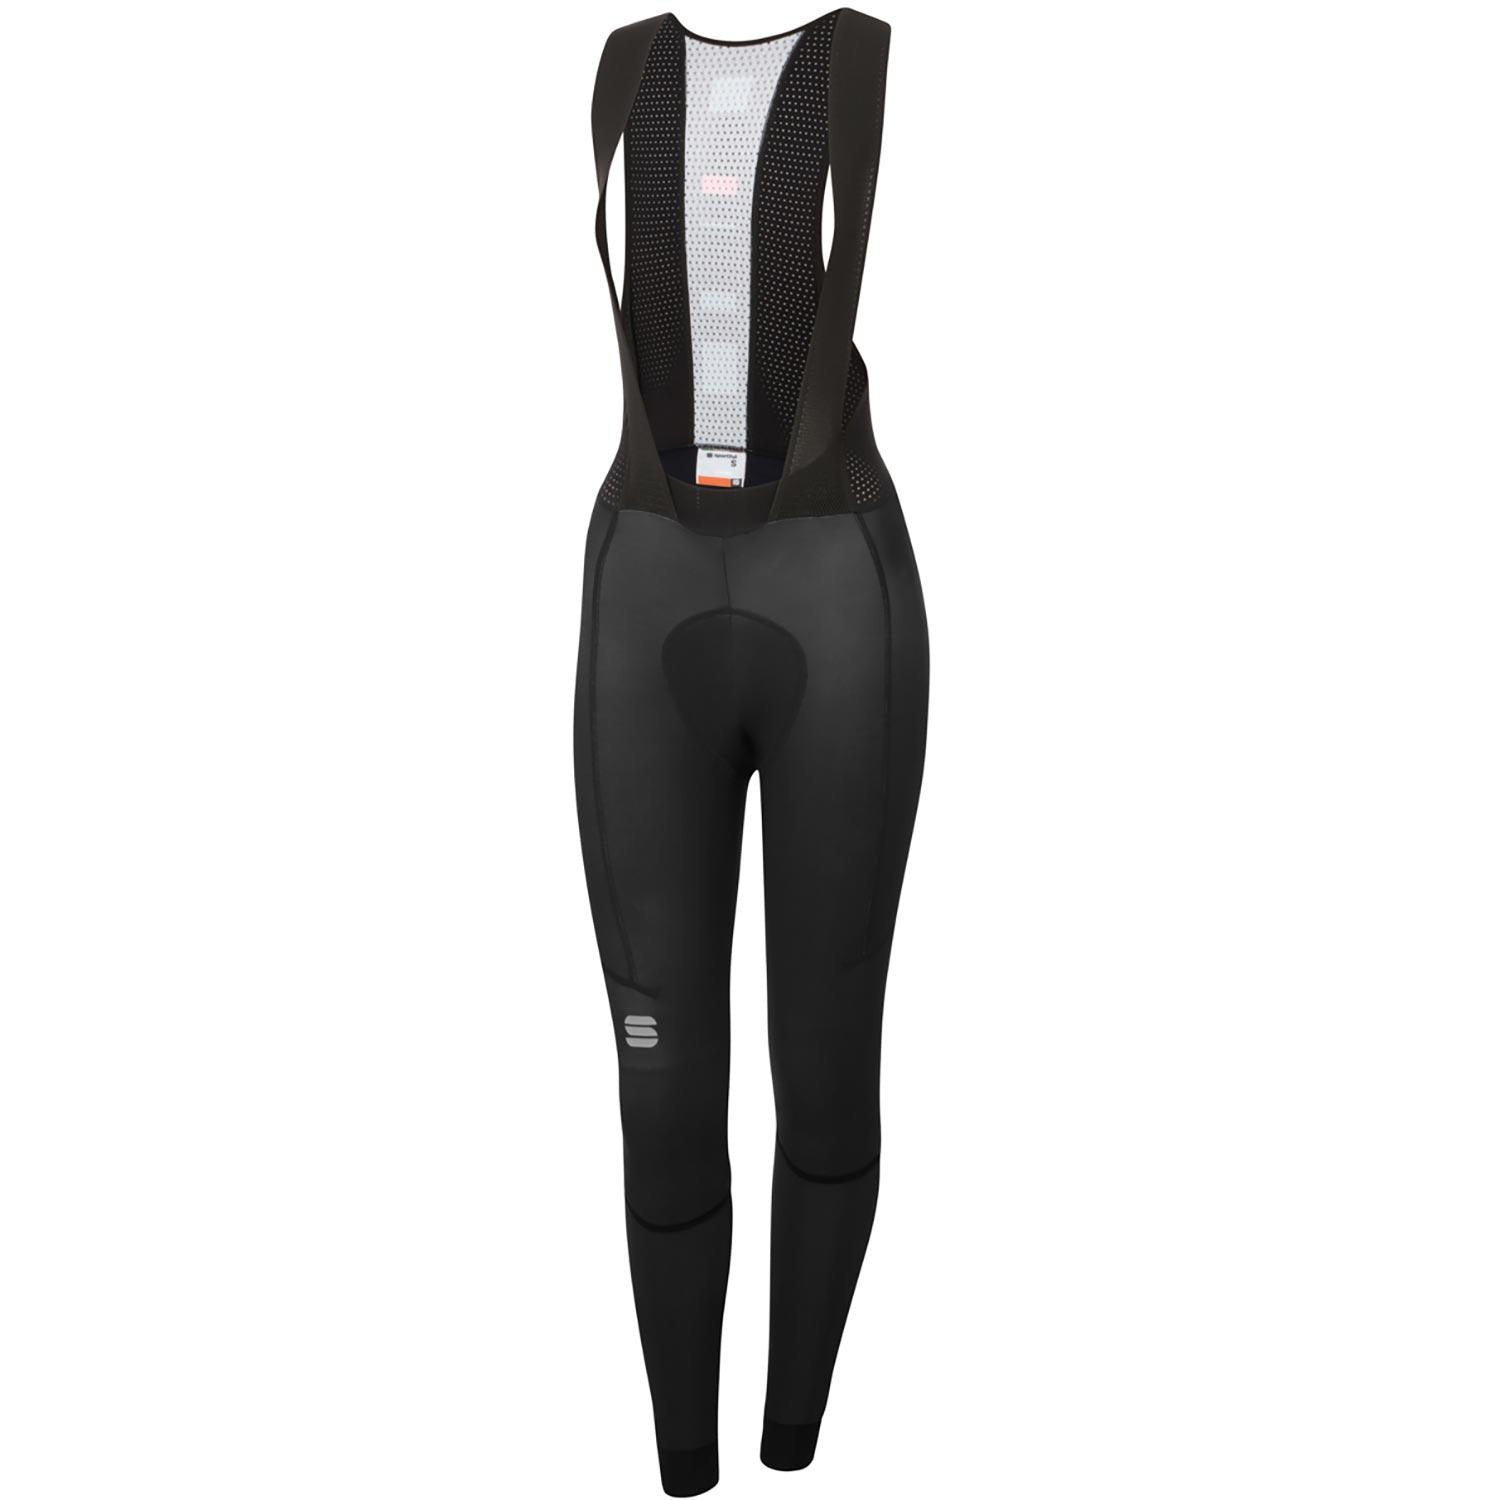 Sportful-Sportful BodyFit Pro Women's Bibtights-Black-XS-SF205230021-saddleback-elite-performance-cycling